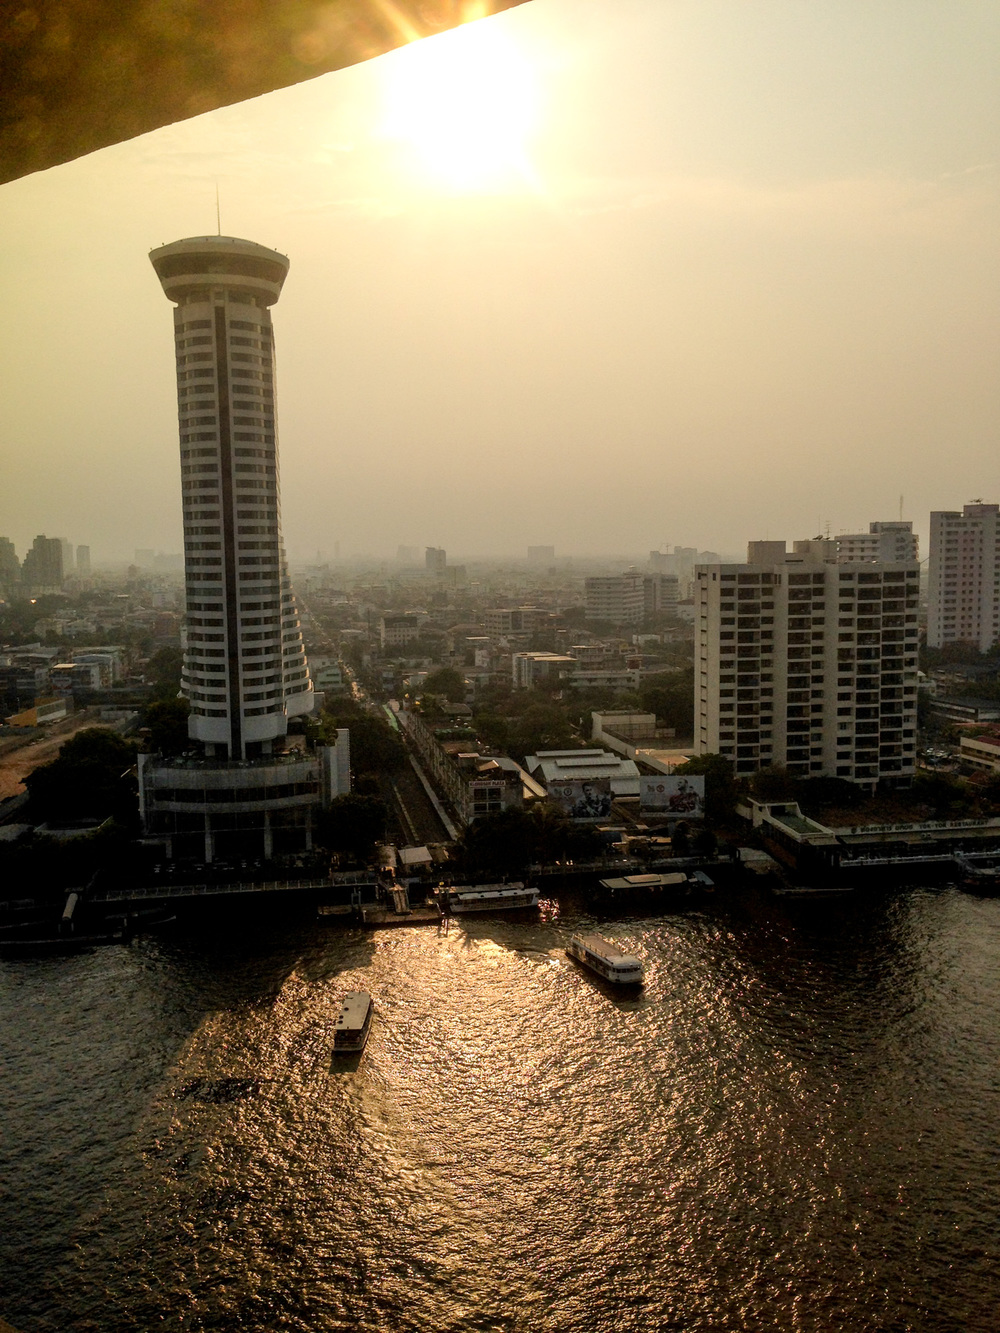 Sunset over the Chao Phraya river with the  Hilton Millennium  tower in the background.